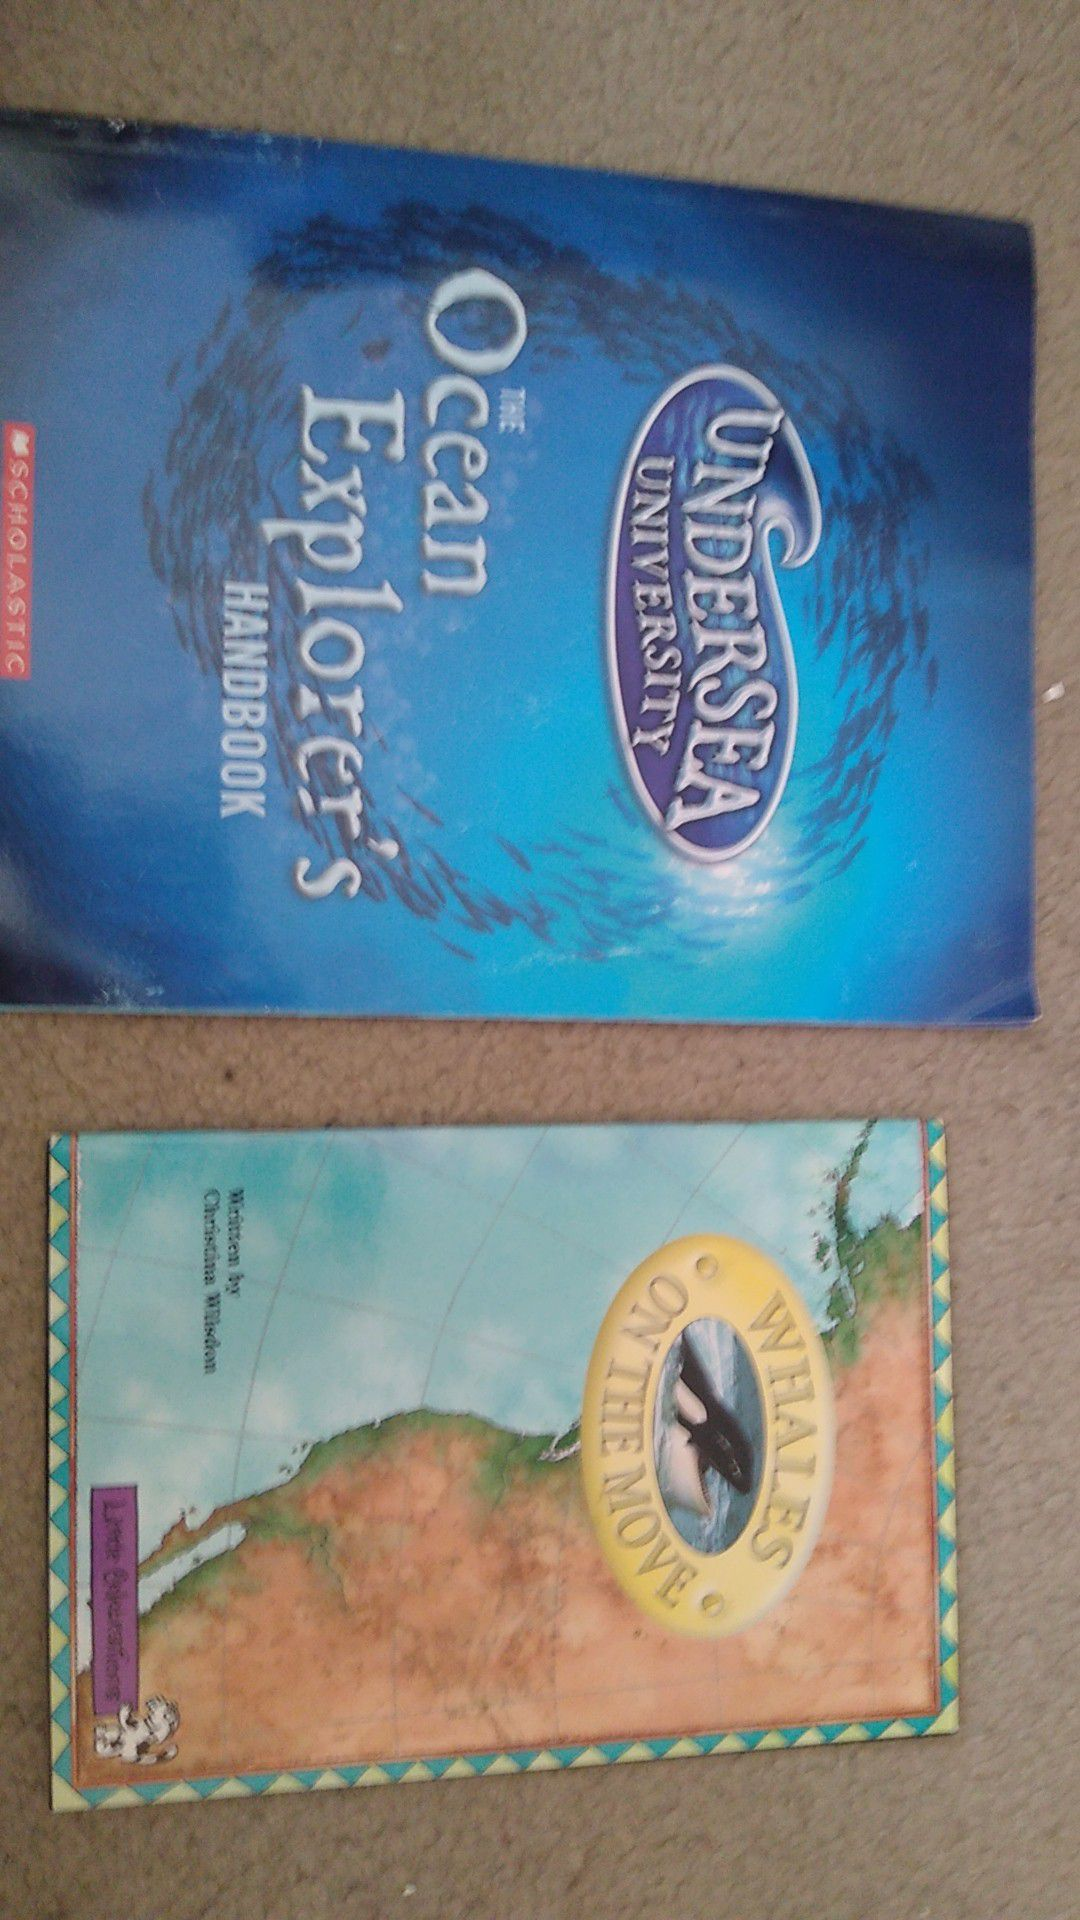 Free science, biology paperbacks for younger kids